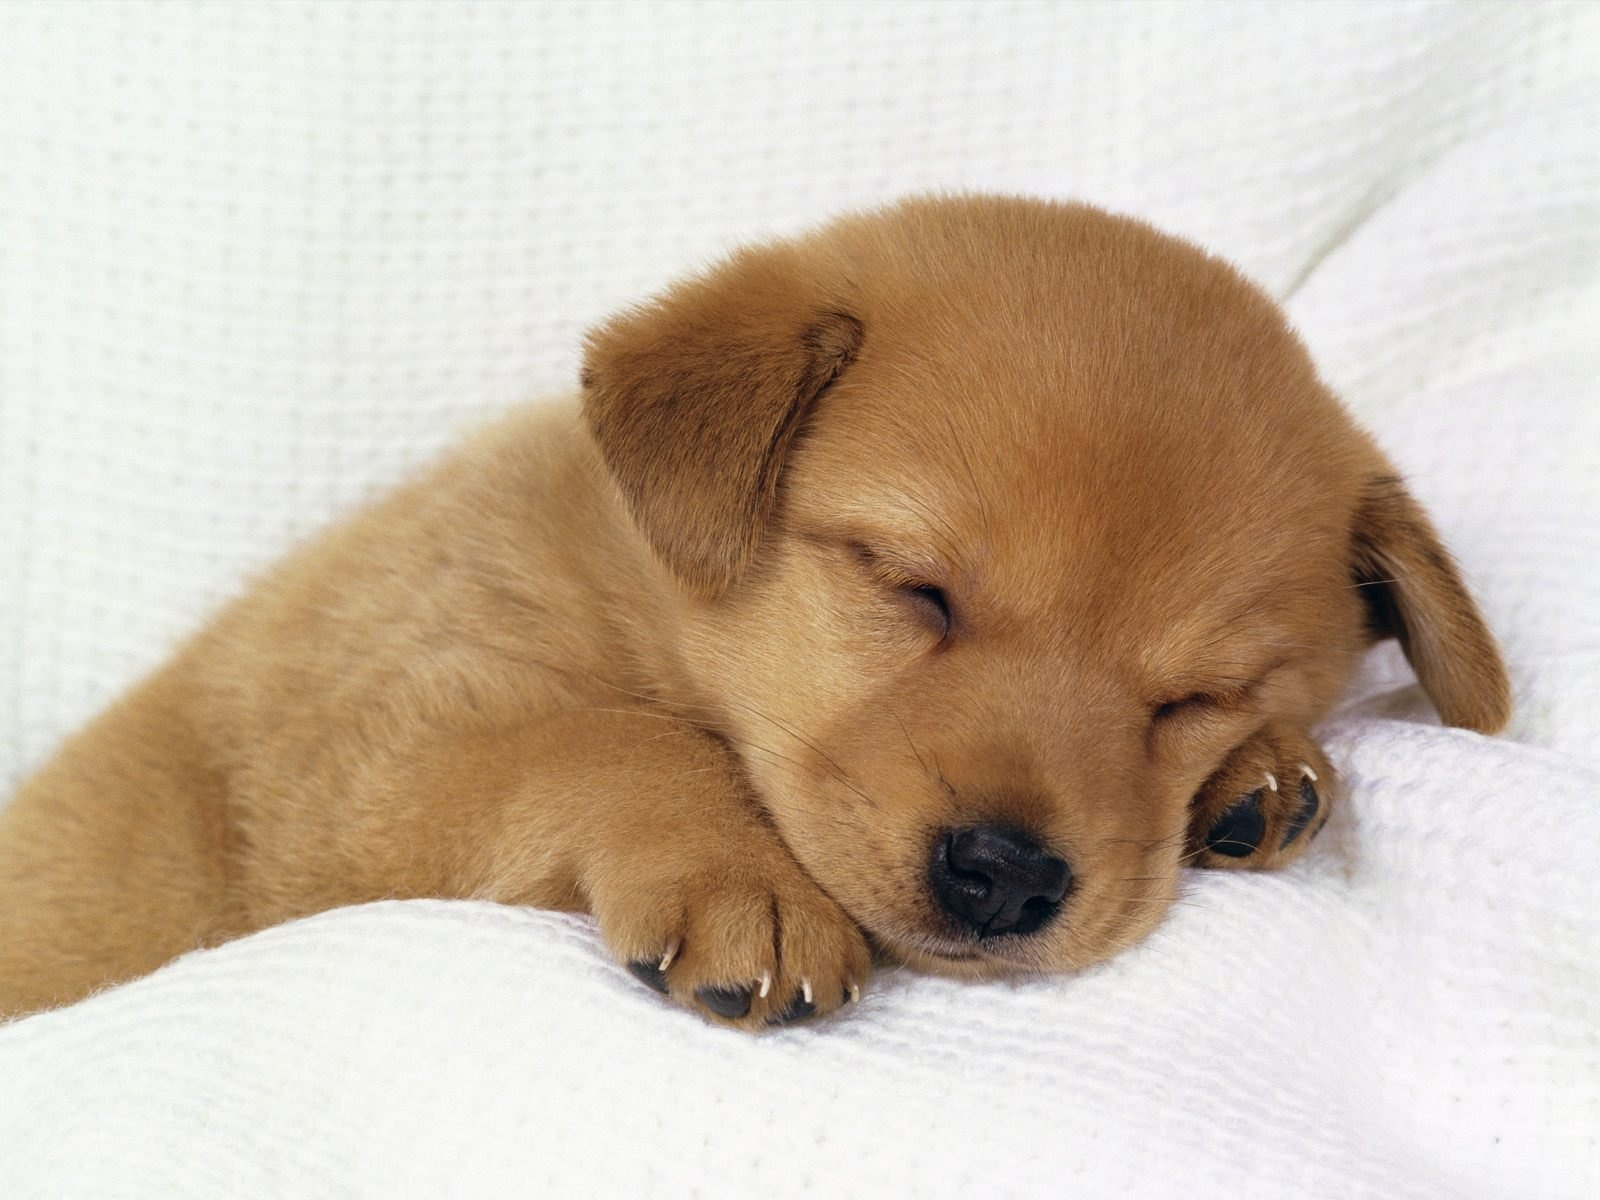 cute-baby-dog-sleeping-1600x1200